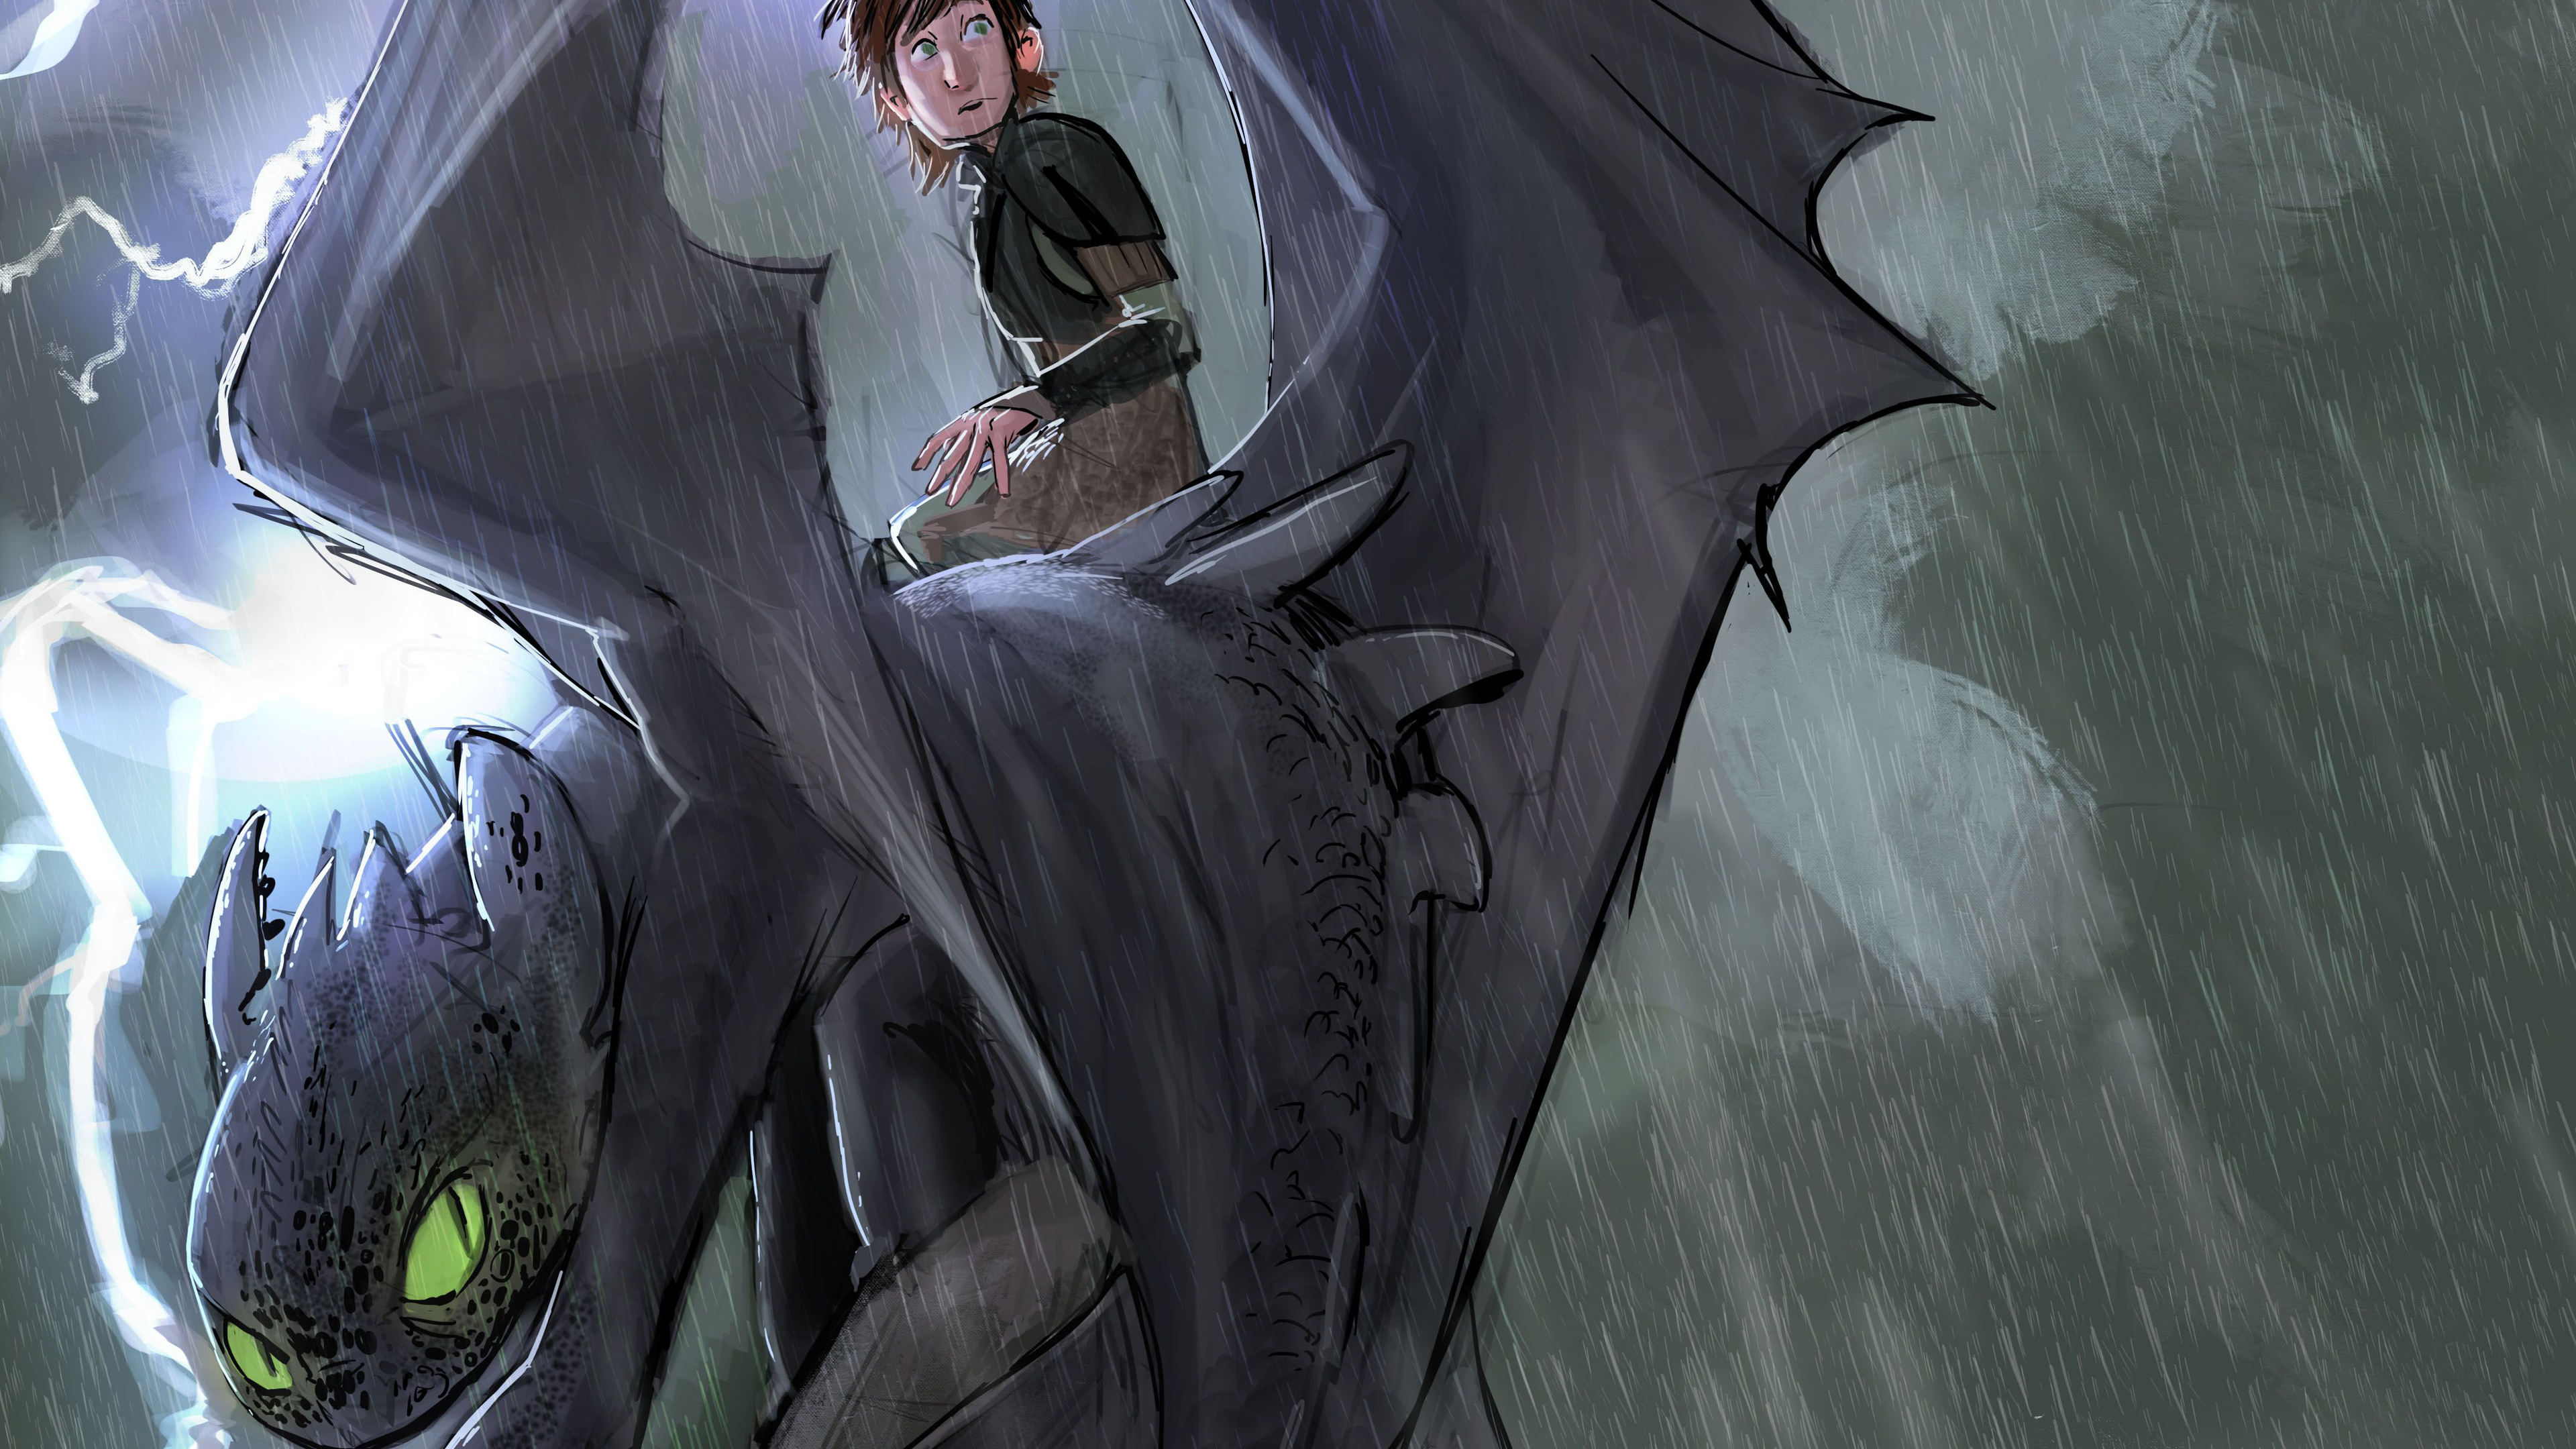 How To Train Your Dragon Into Hidden World Sketch Art Train Your Dragon Toothless Alpha Mode 3840x2160 Wallpaper Teahub Io